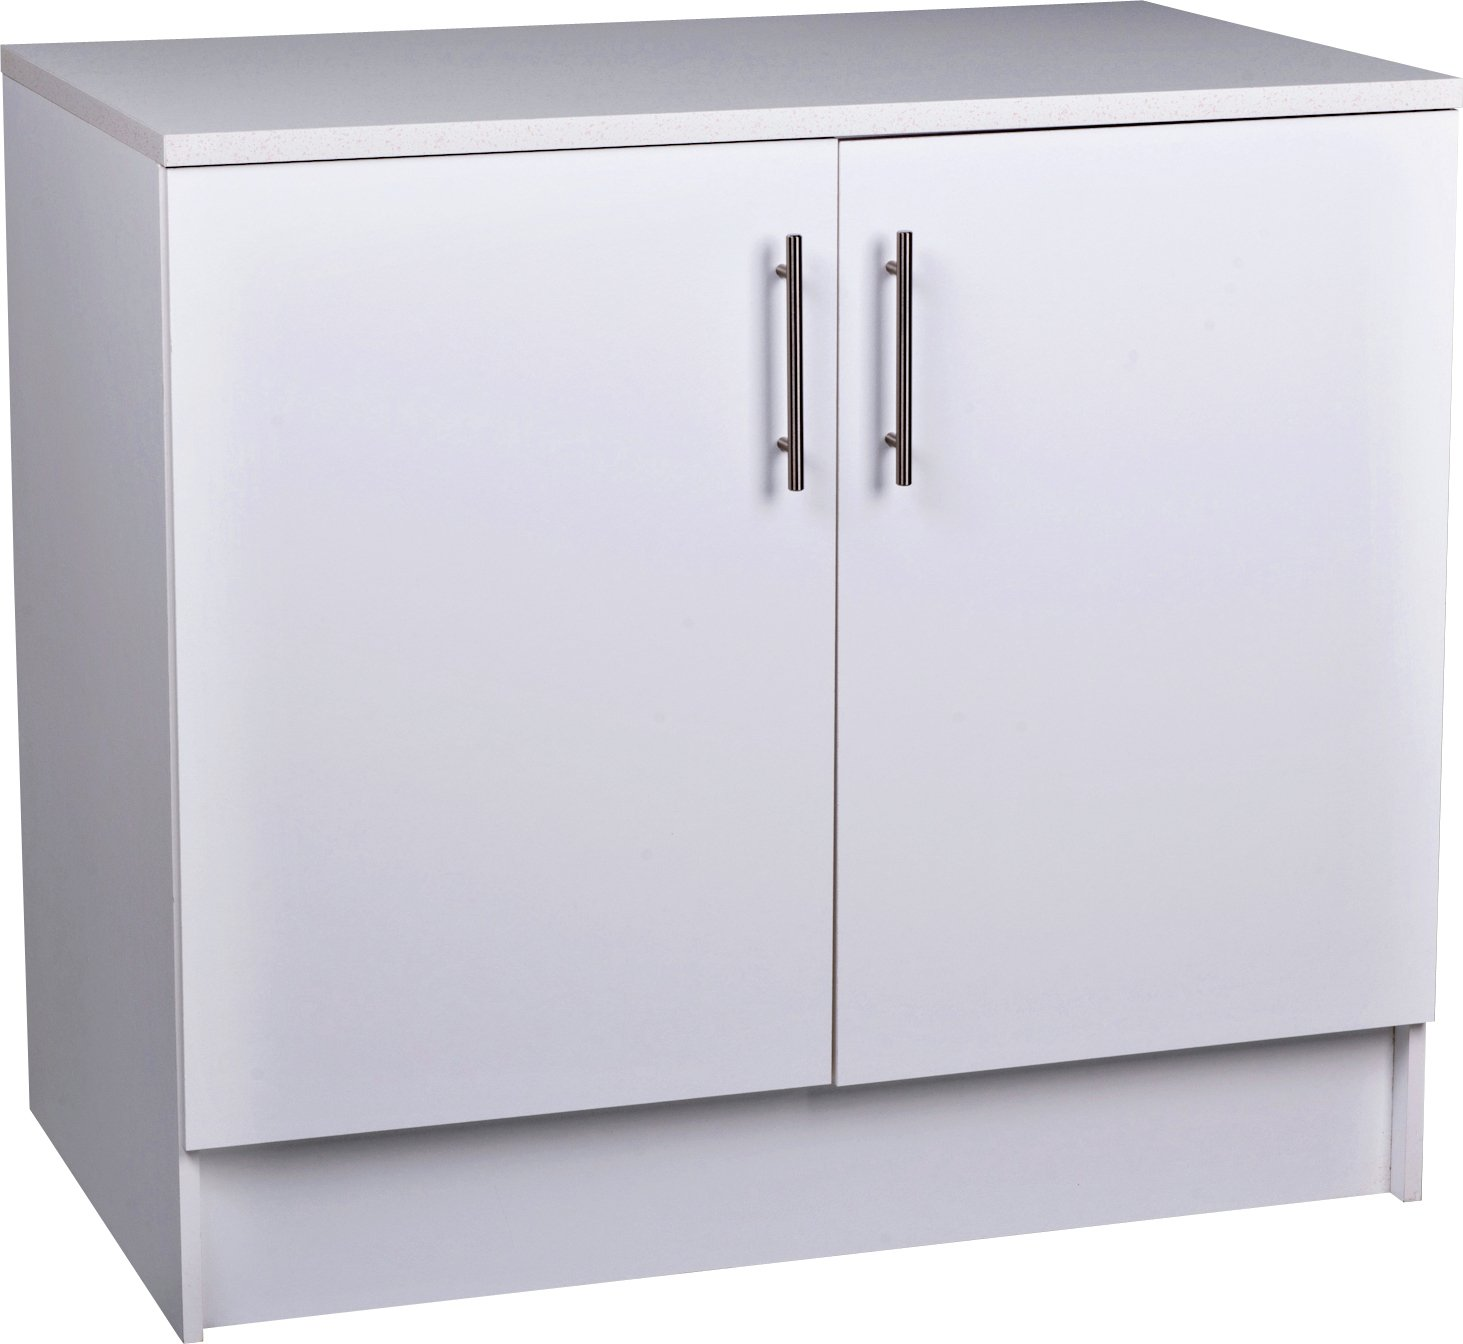 Sale On Athina 1000mm Fitted Kitchen Base Unit